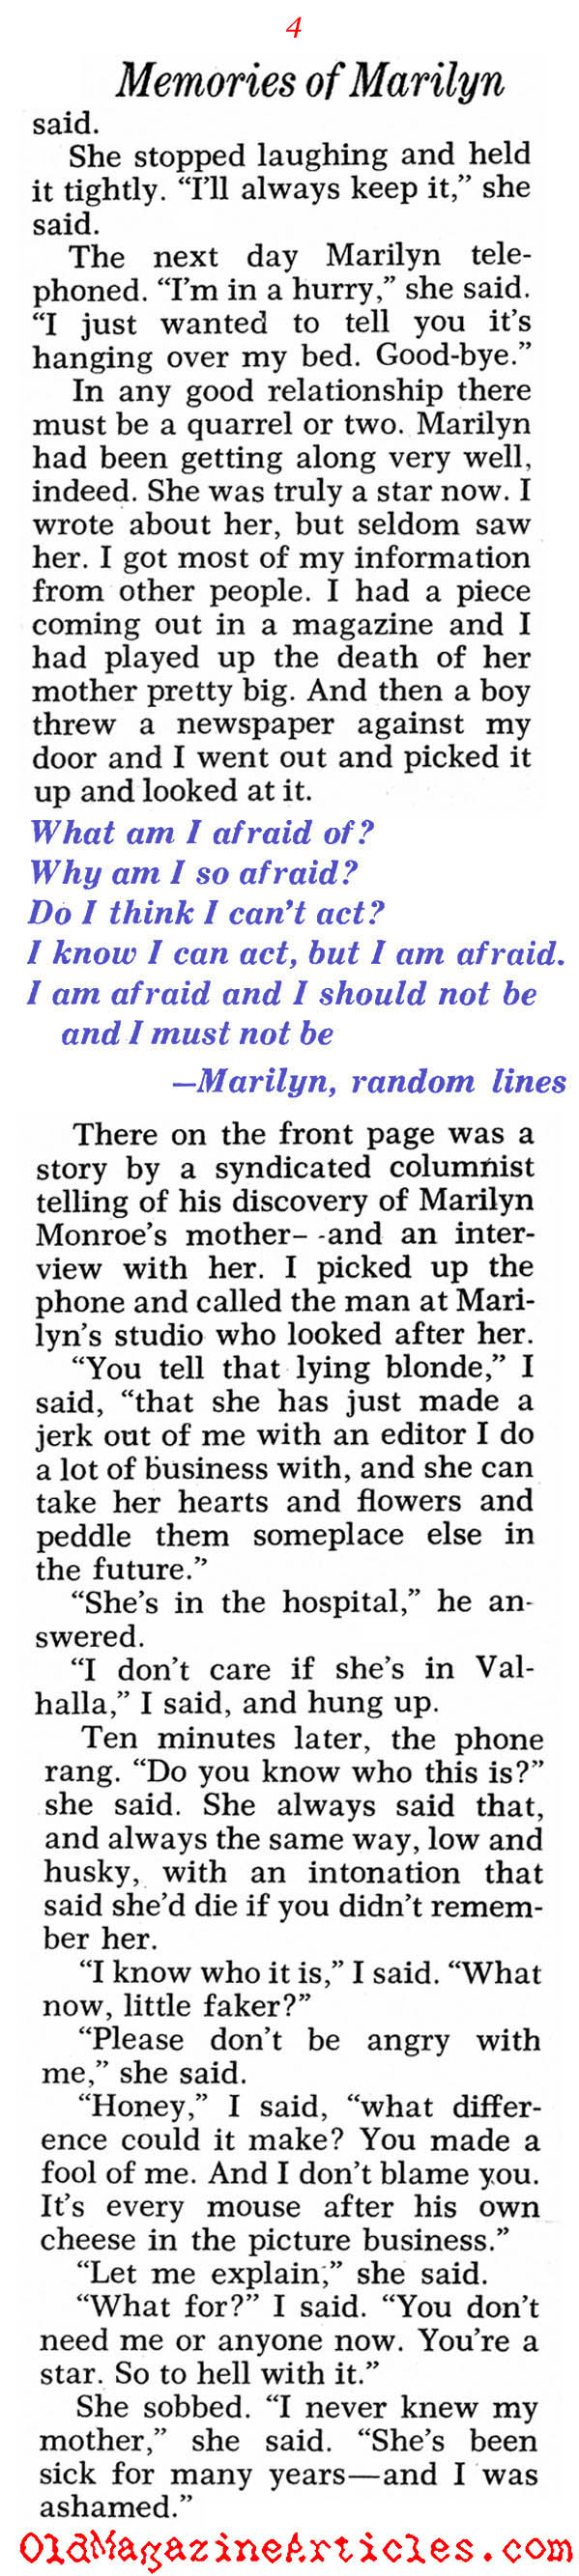 Warm Recollections of Marilyn (Pageant Magazine, 1971)